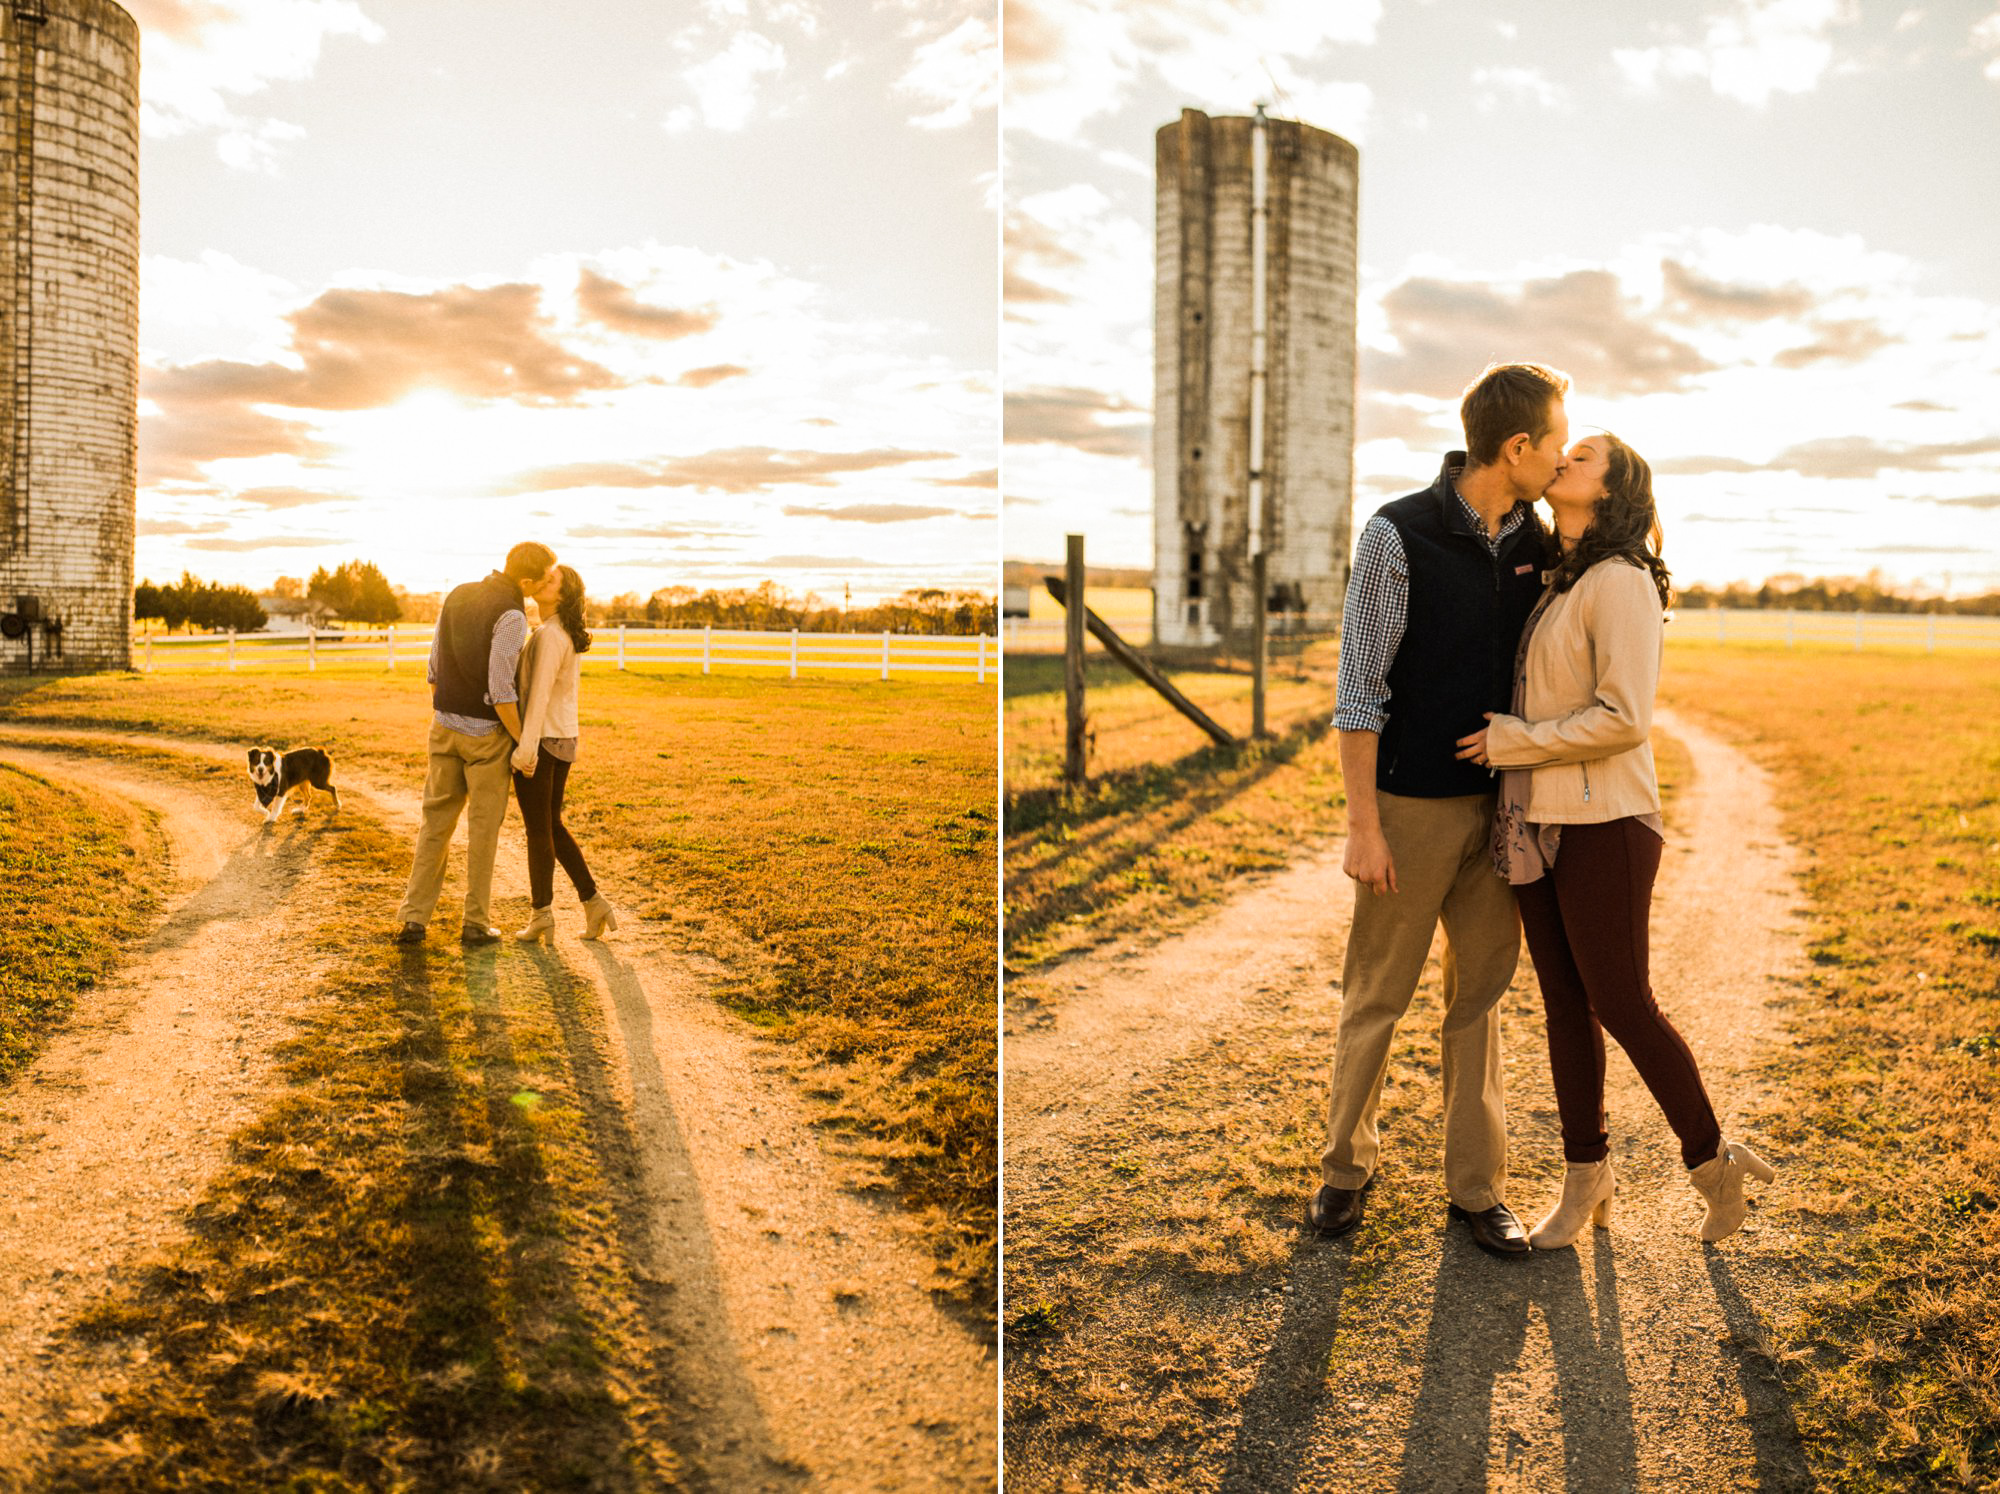 engagement-photography-88-love-stories_0018.jpg